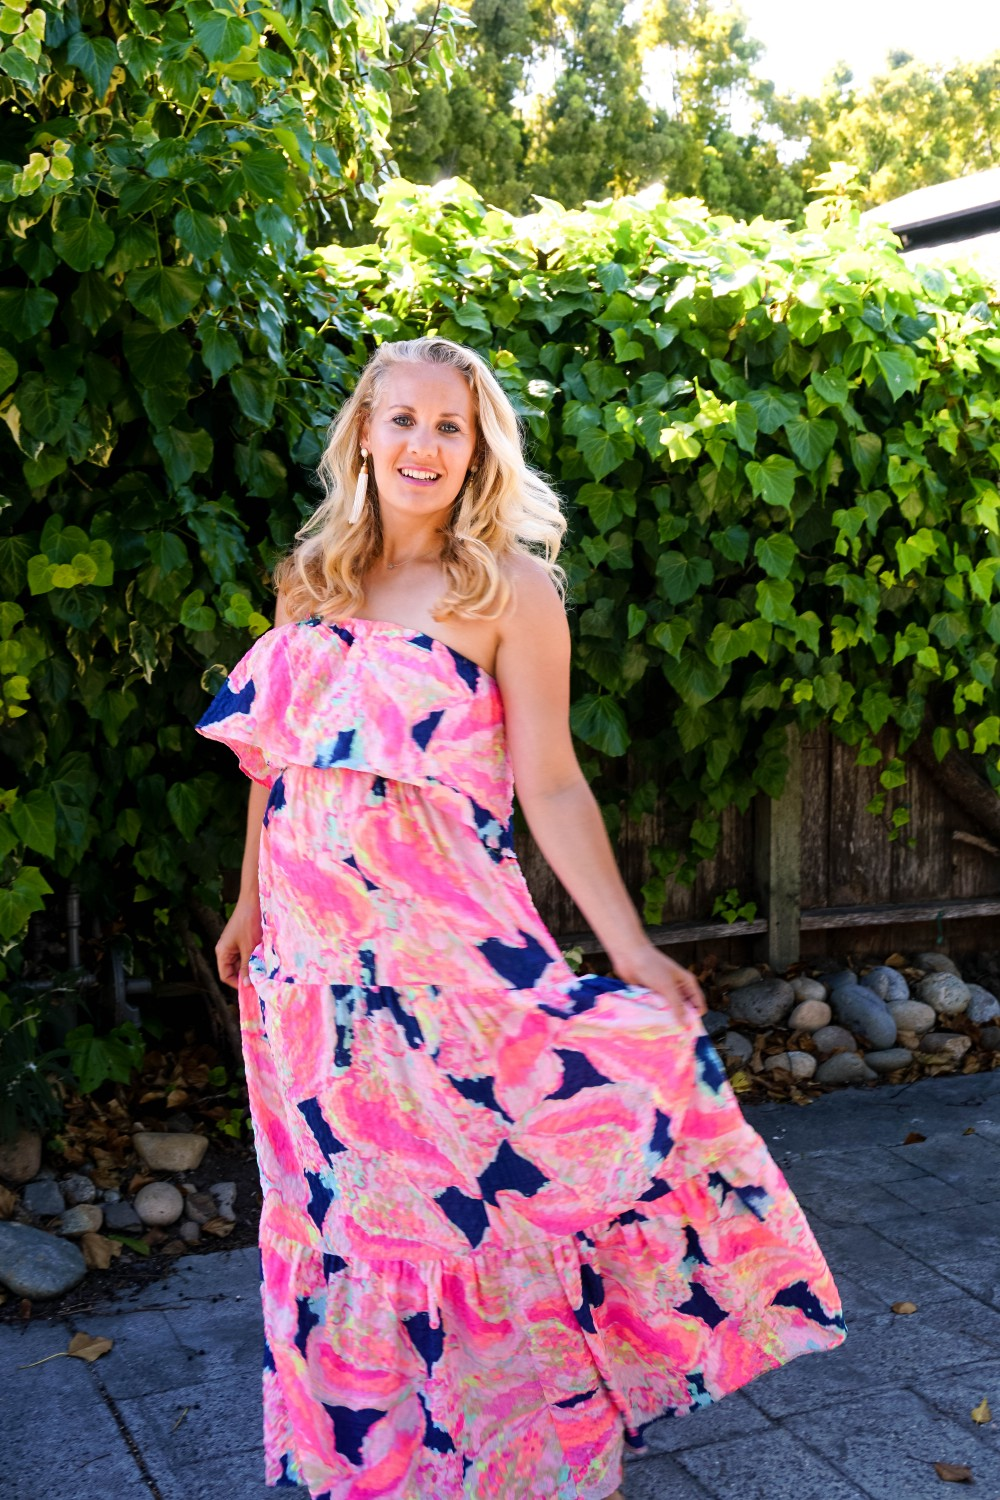 Lilly Pulitzer-Resort 365-Outfit Inspiration-Summer Style-Summer Maxi Dress-Summer 2017 Trends-Have Need Want 8